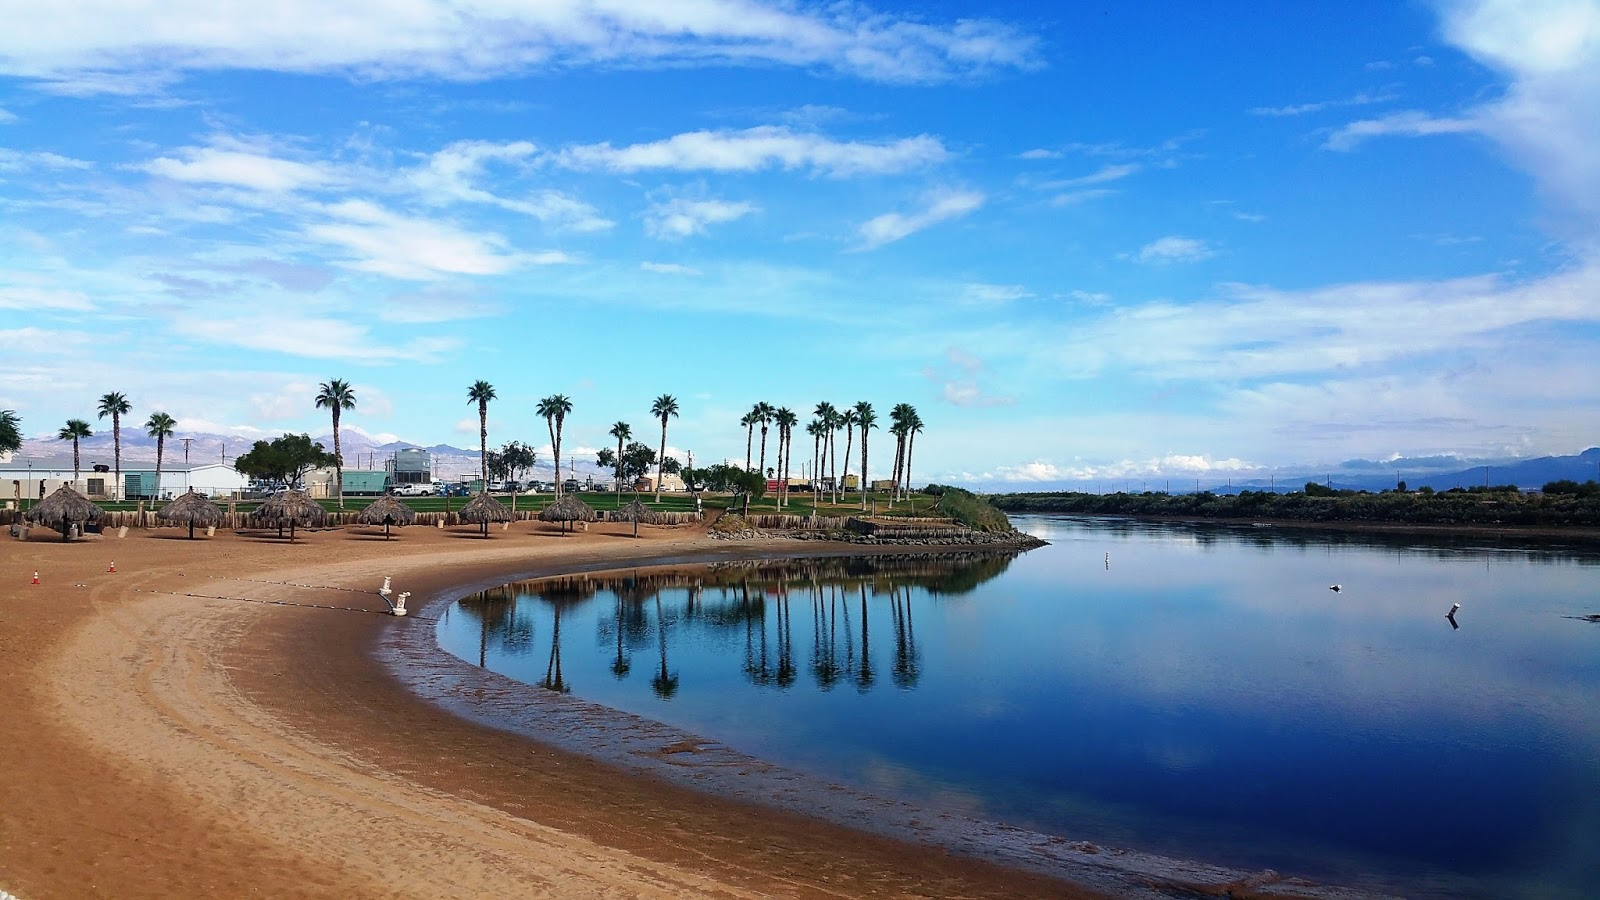 River palms resort casino laughlin nv gambling odds and evens